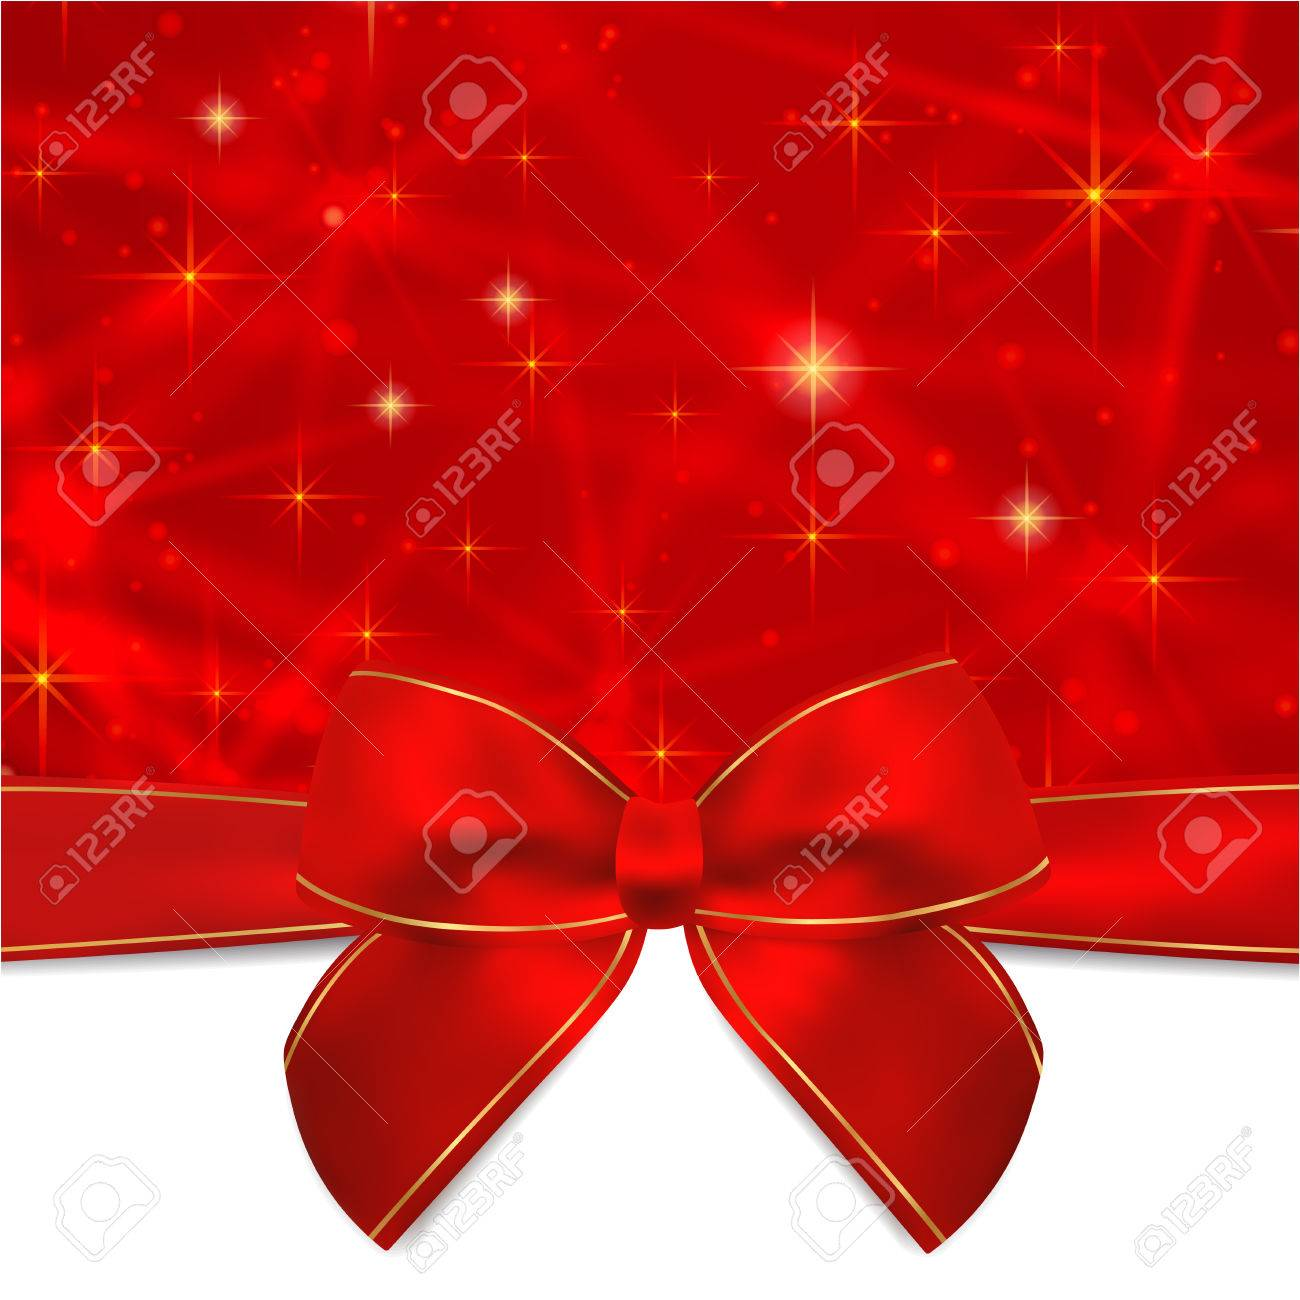 holiday card christmas card birthday card gift card greeting card template with red